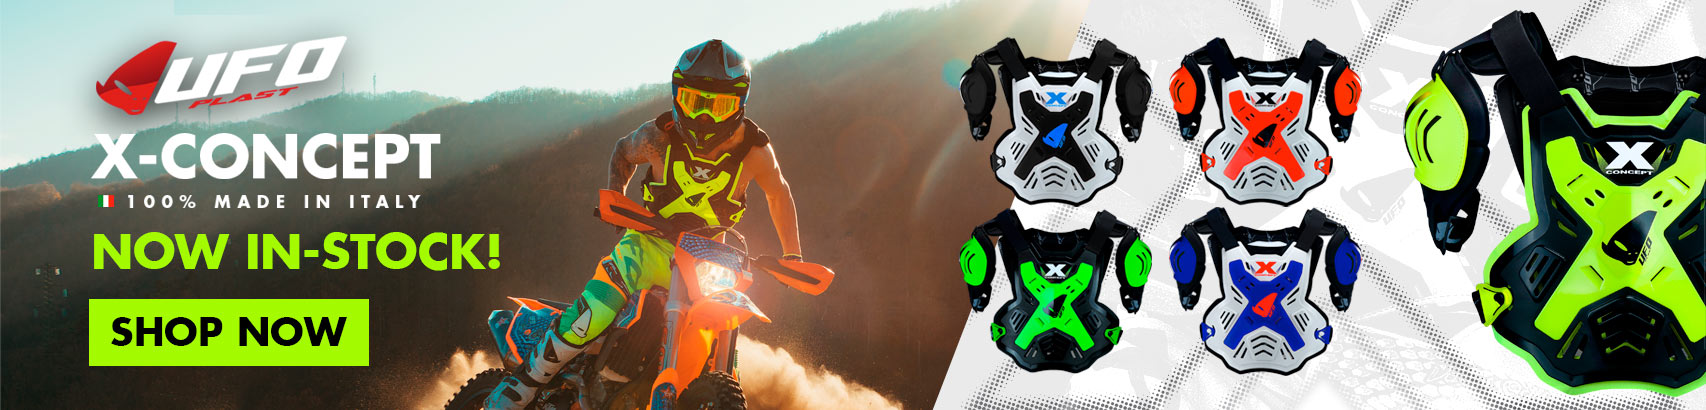 UFO X-Concept Chest Protector